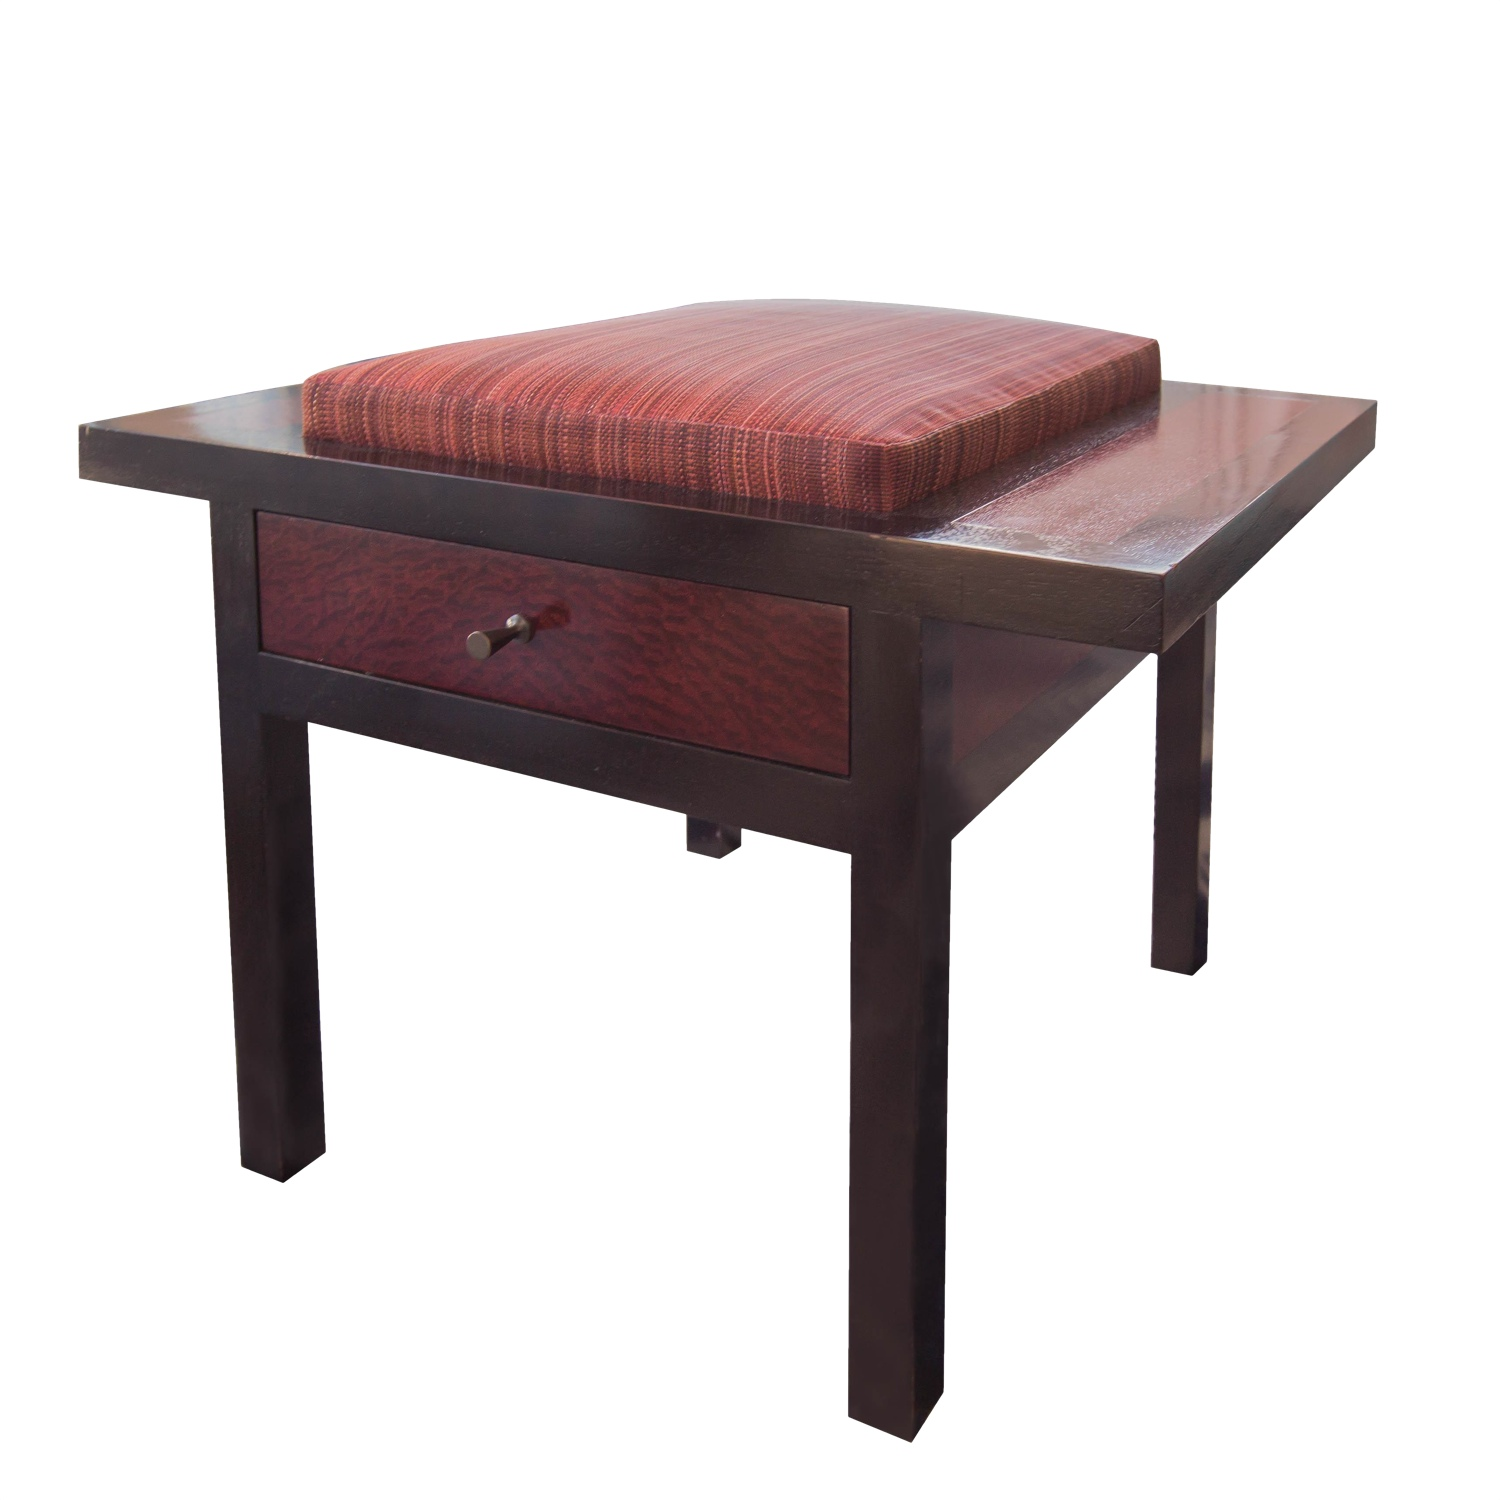 Holly hunt african mahogany storage stool chairish - Contemporary side tables with storage ...